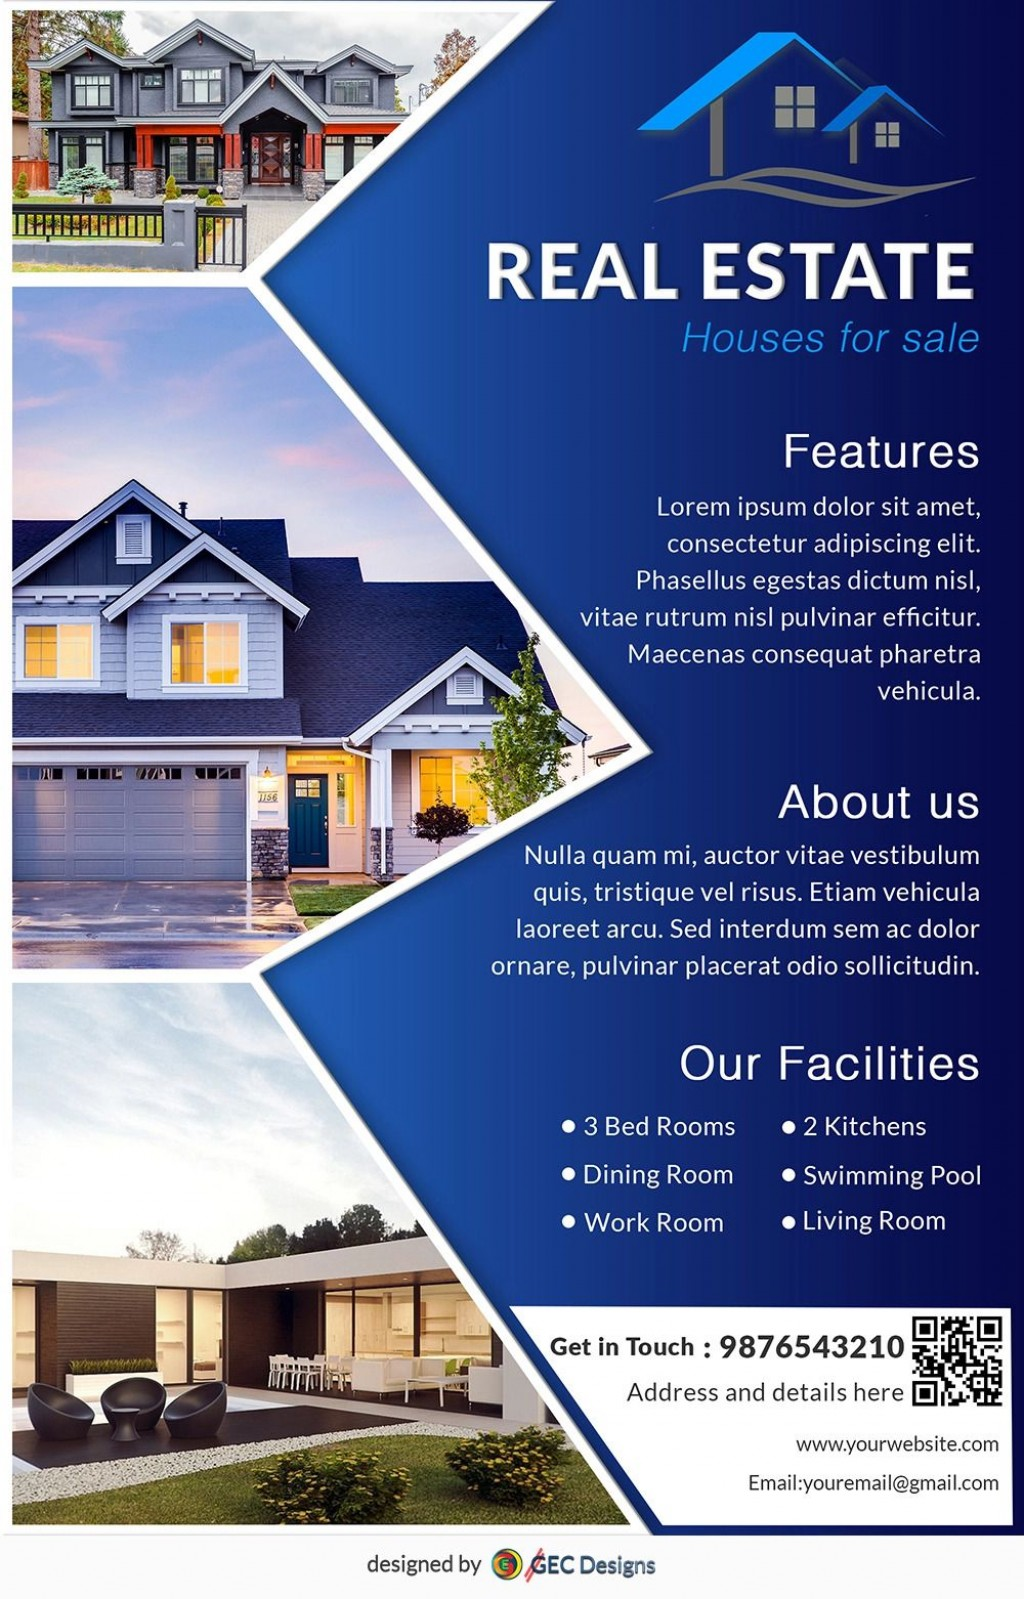 004 Top Real Estate Flyer Template Free Inspiration  Publisher Commercial Pdf DownloadLarge